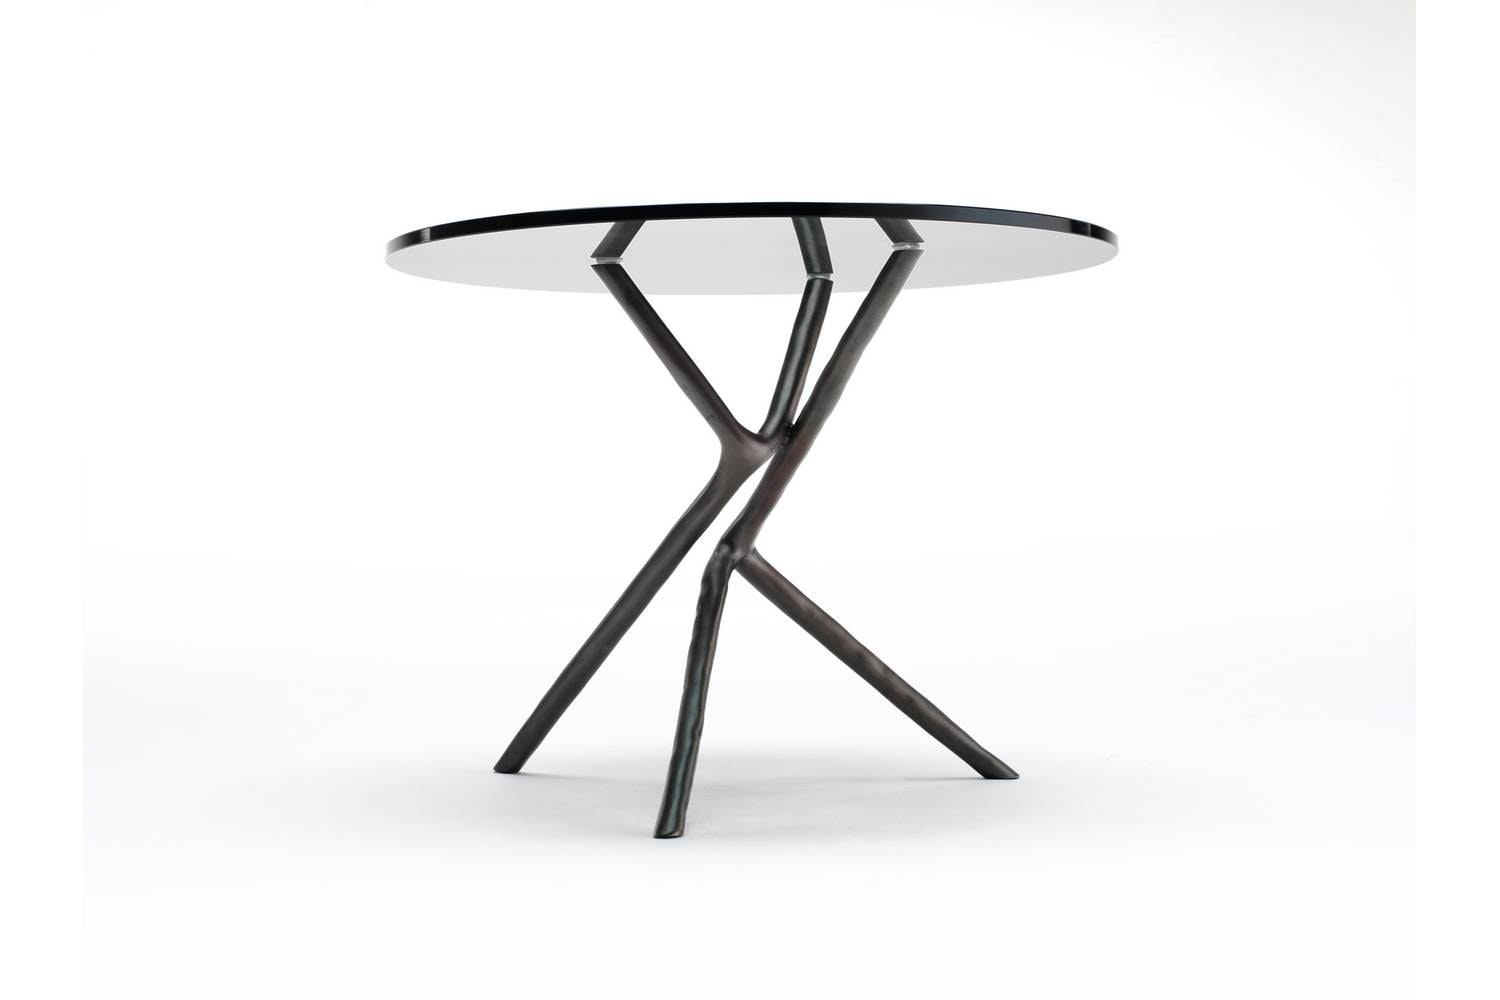 Ying Ying Coffee Table by Matthias Hickl for Living Divani